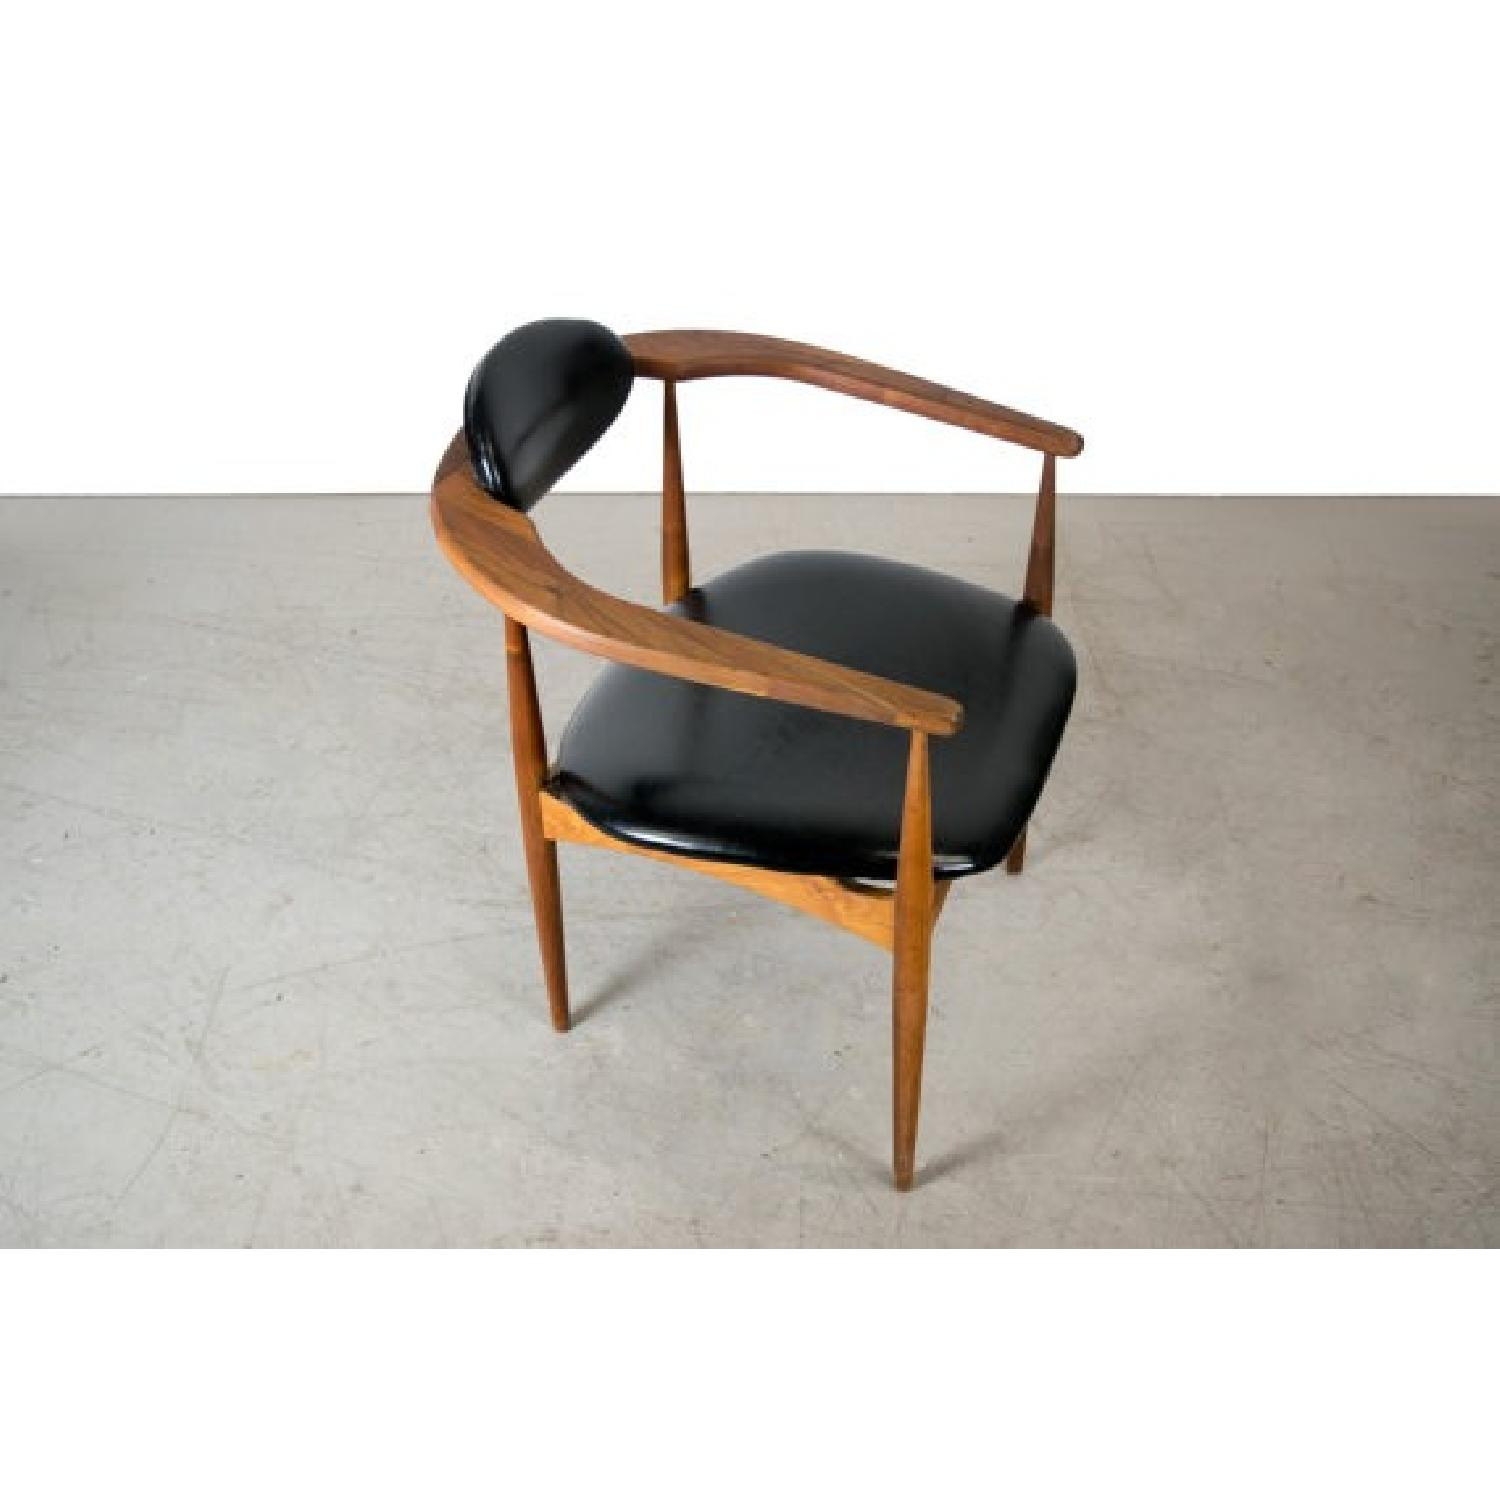 Vintage Adrian Pearsall Chairs - image-1